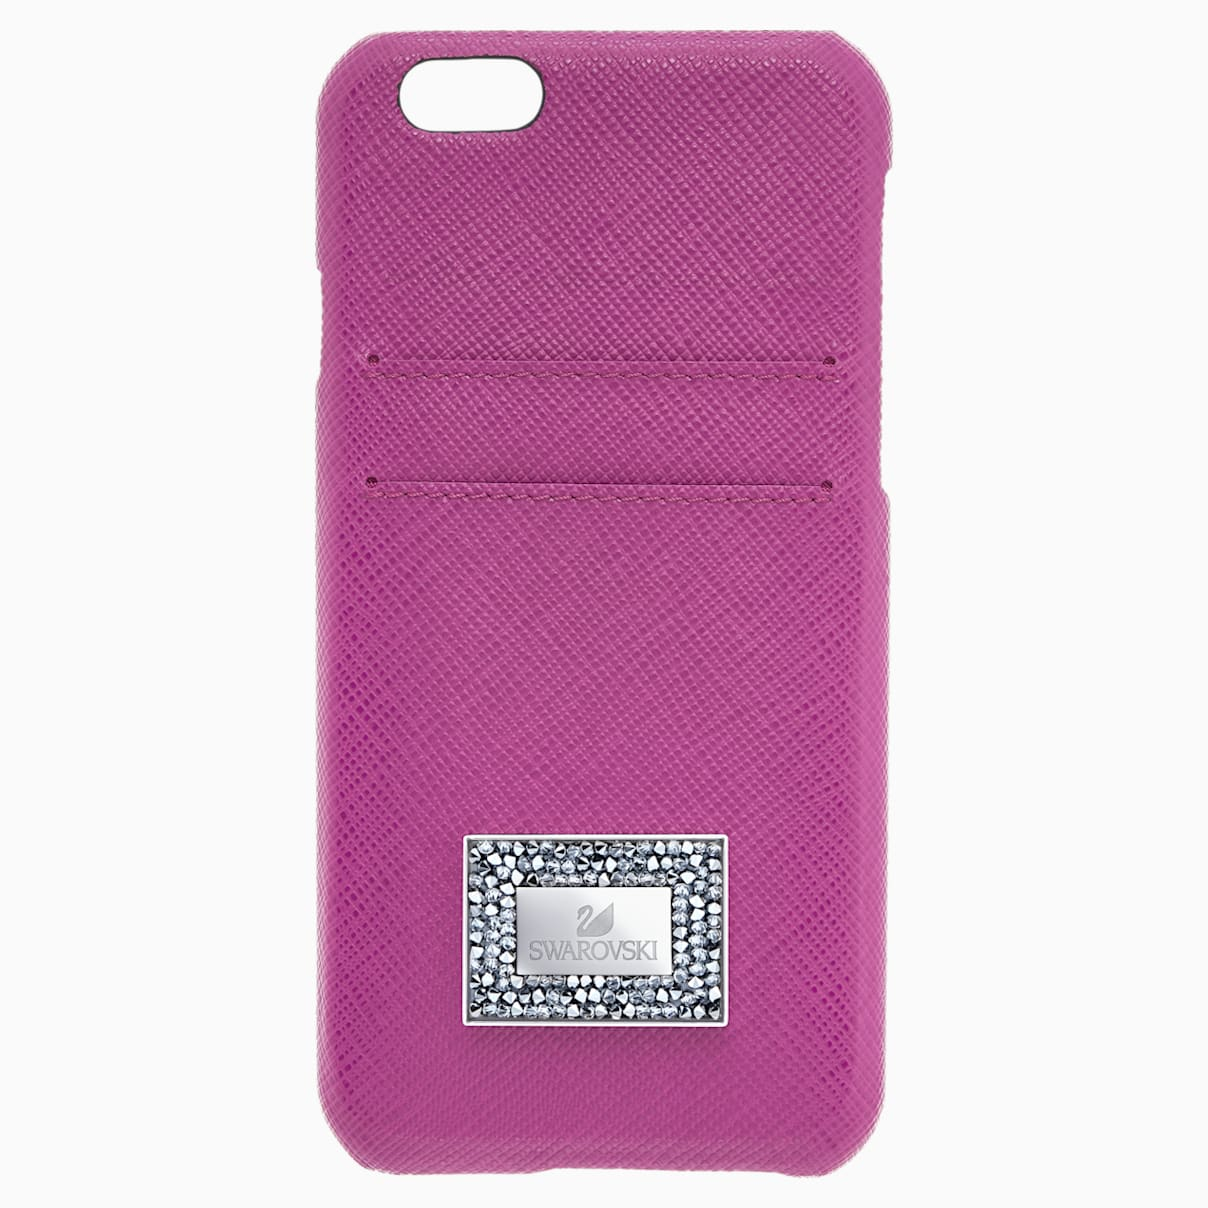 Custodia smartphone con bordi protettivi Versatile, iPhone® 7 Plus, Rosa